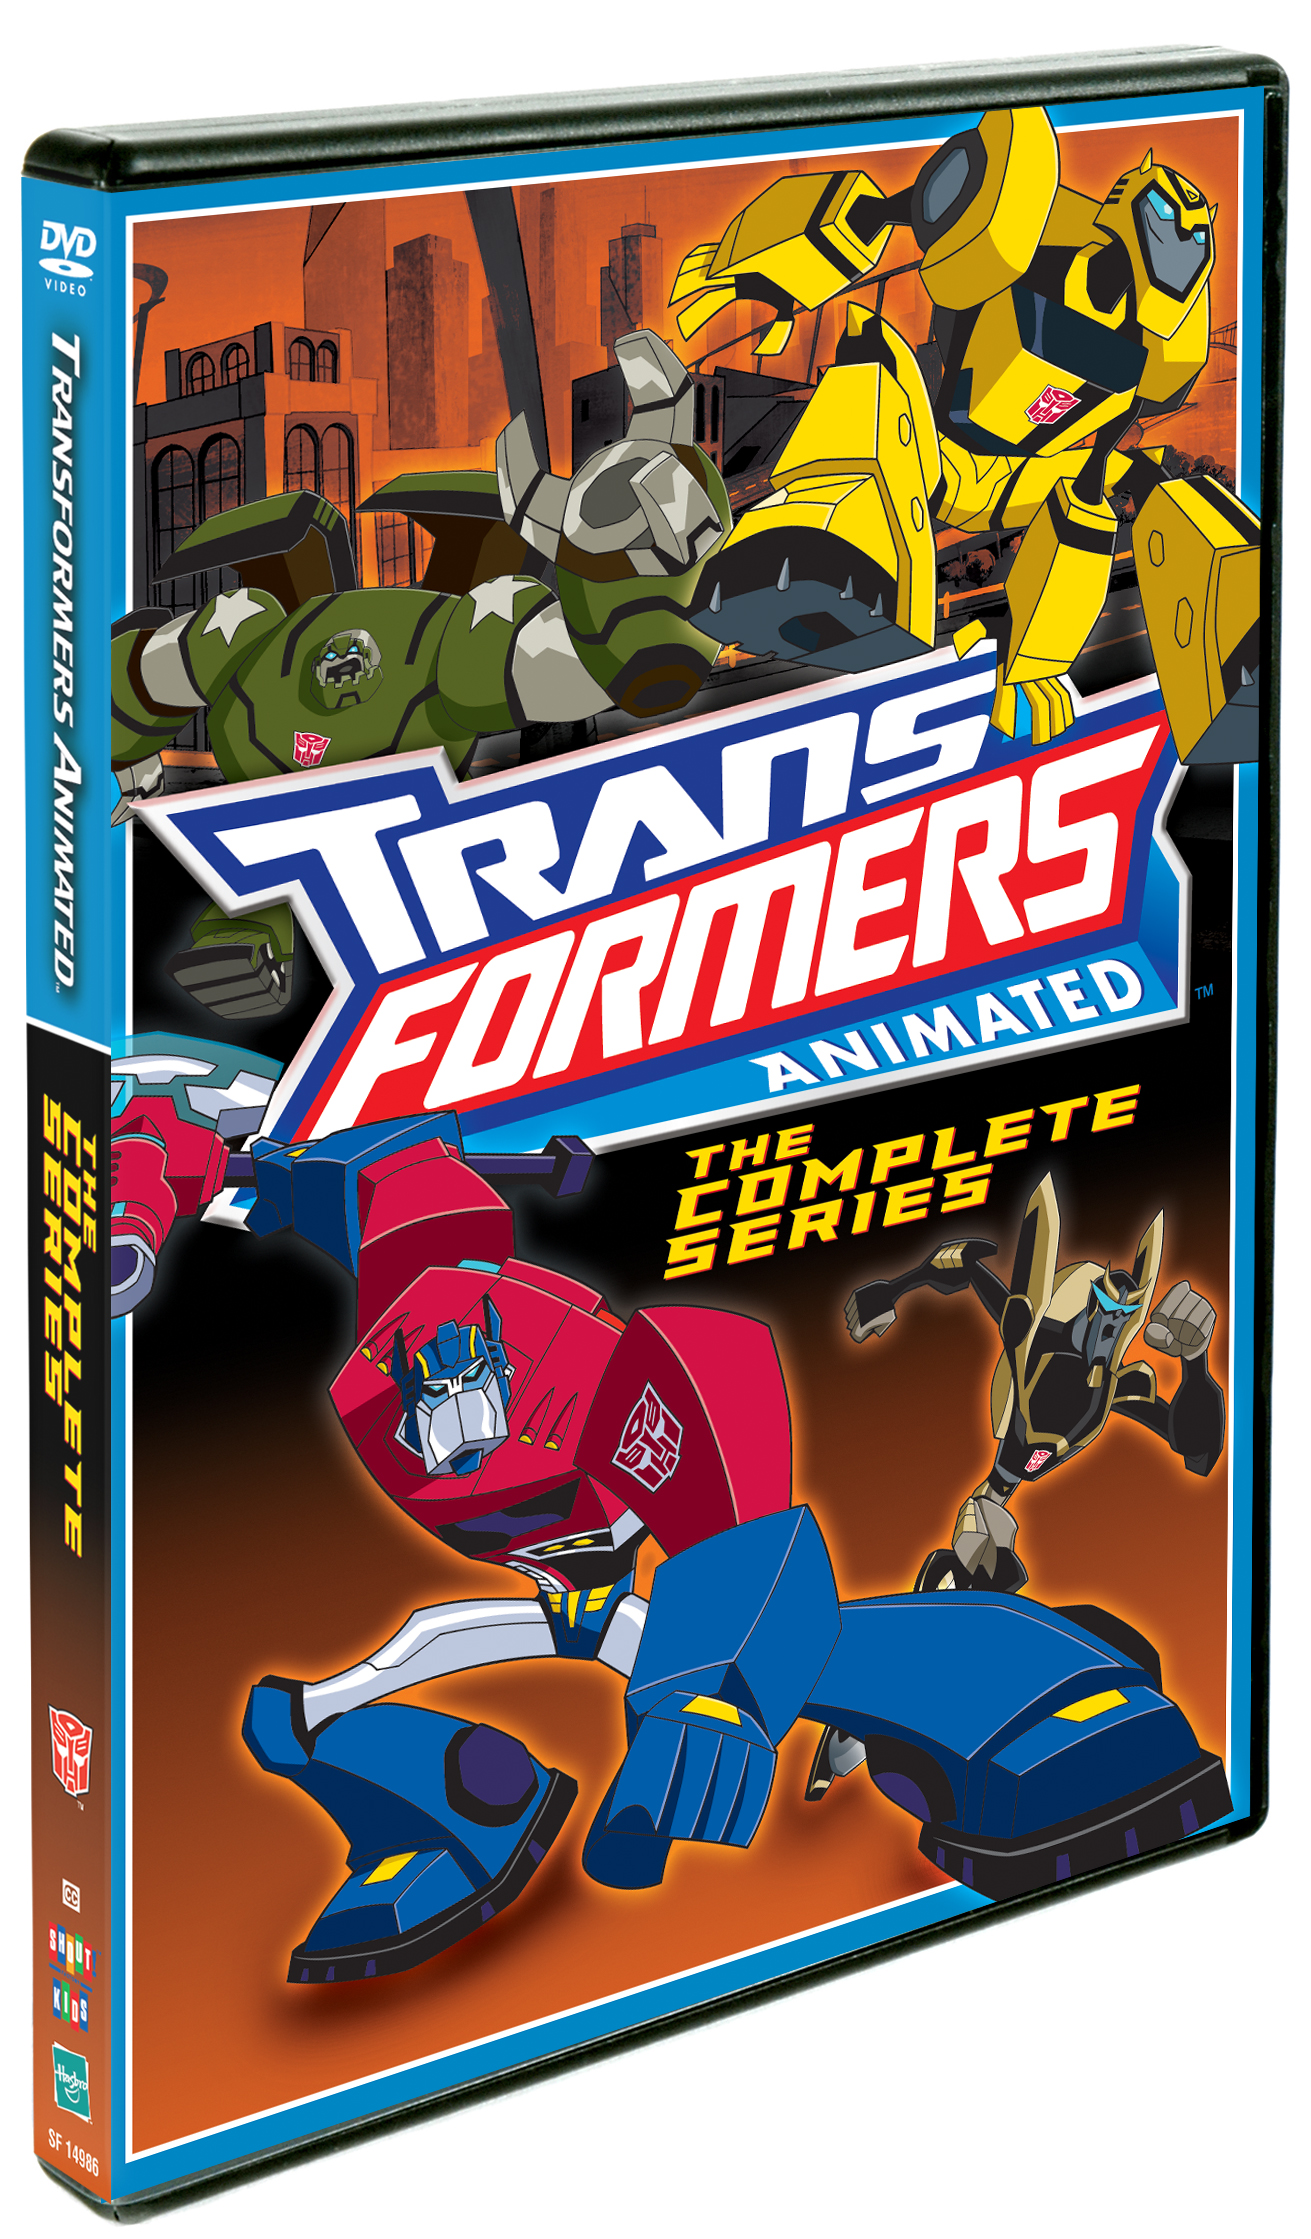 Gcheung28/Transformers Animated: The Complete Series Giveaway